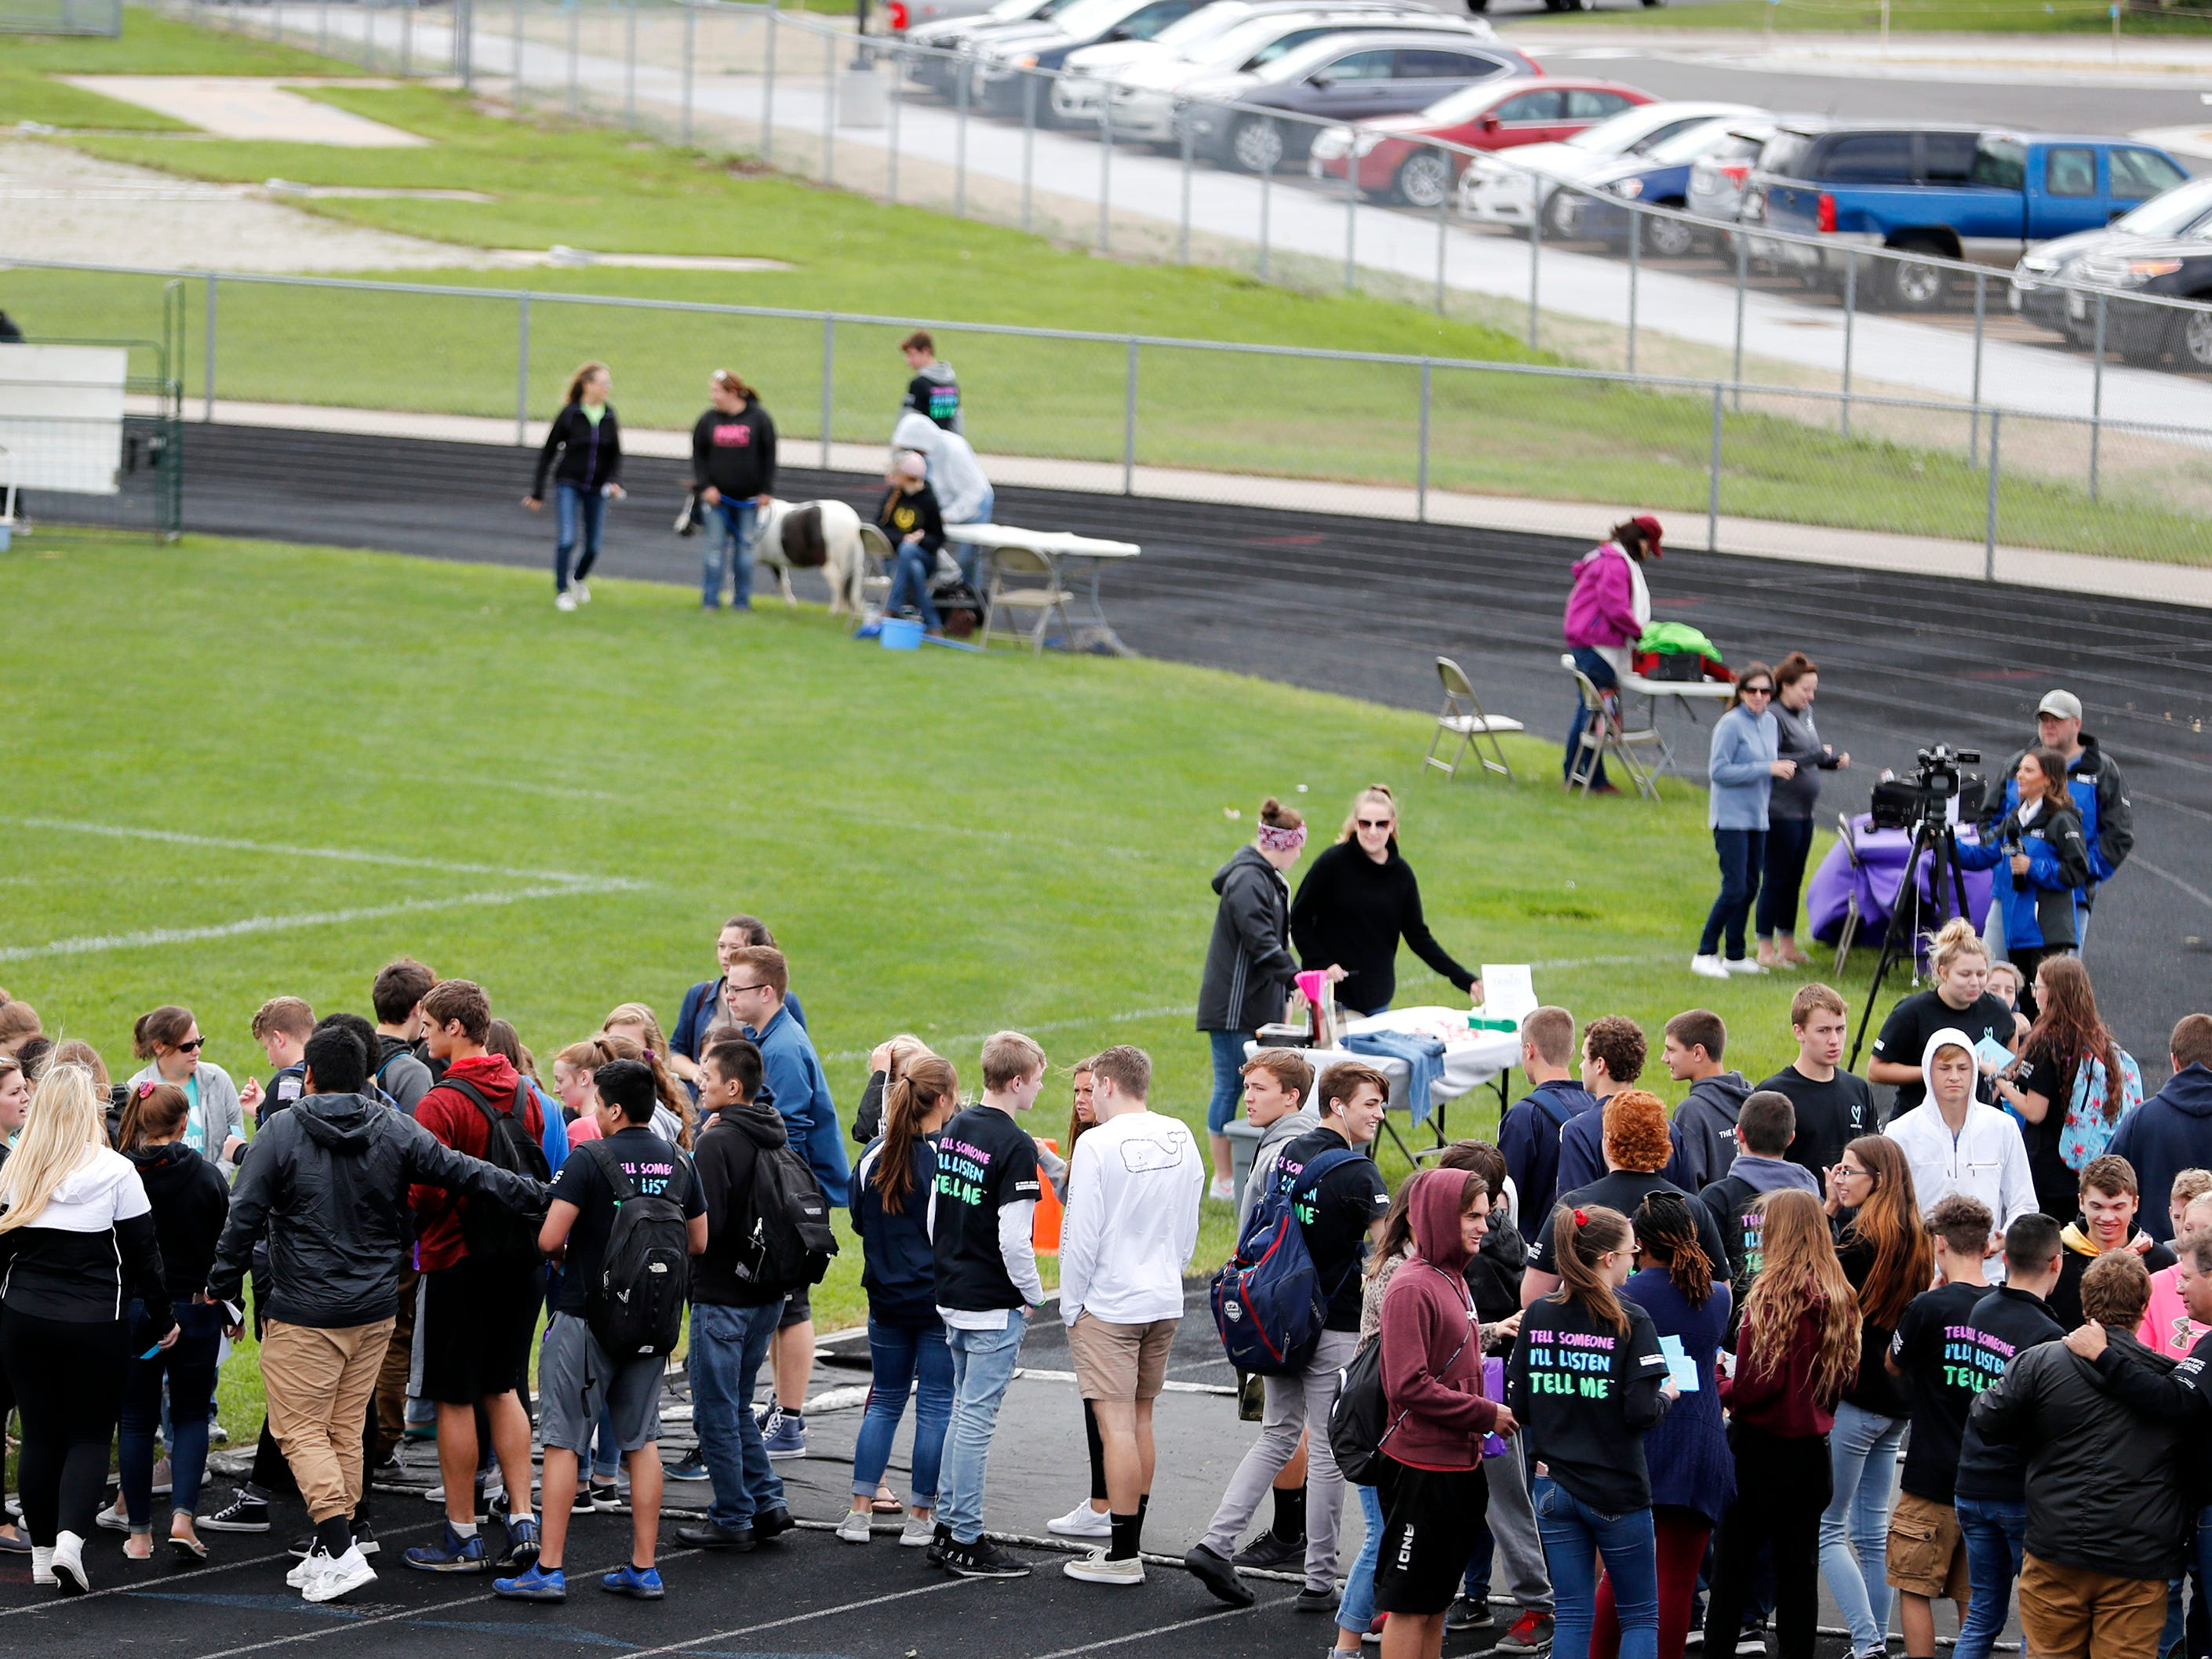 Little Chute High School seniors start to make their way around the track to look at booths during Little Chute's mental health wellness fair Friday, Sept. 21, 2018, in Little Chute, Wis.